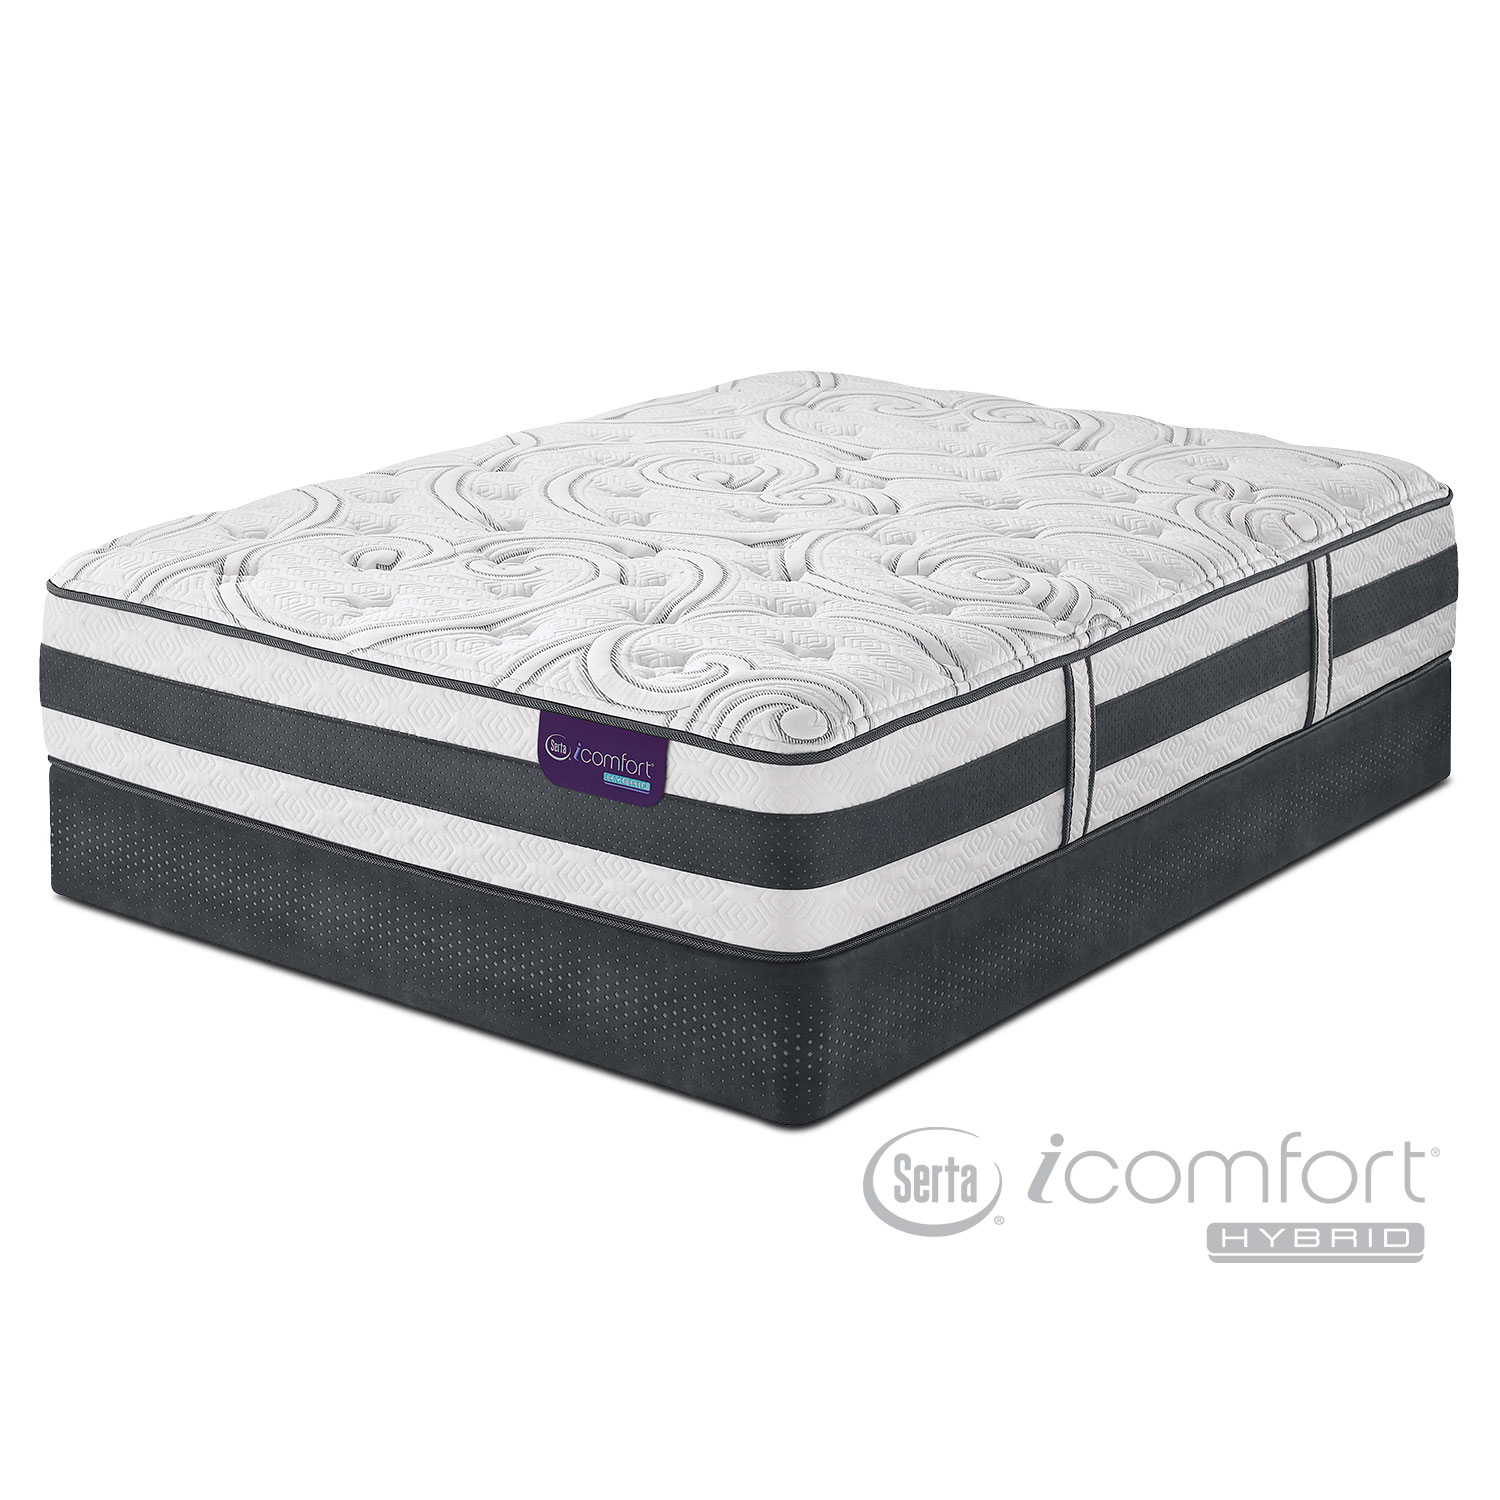 Recognition Plush Full Mattress And Low Profile Foundation